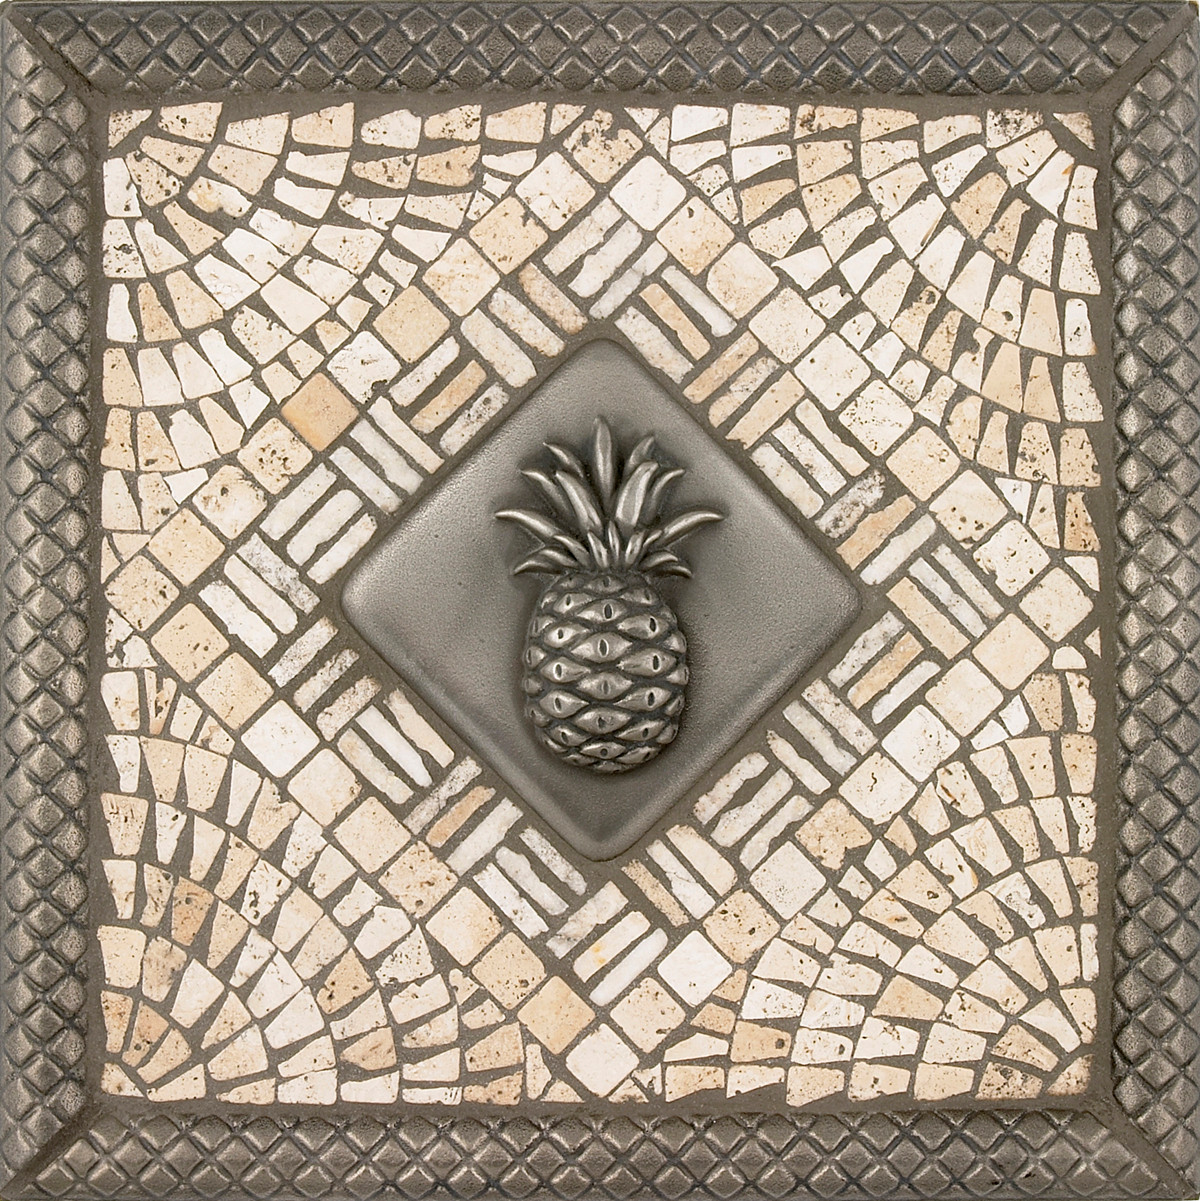 Metal Pineapple Mosaic Tile Backsplash Medallion 12 Inches